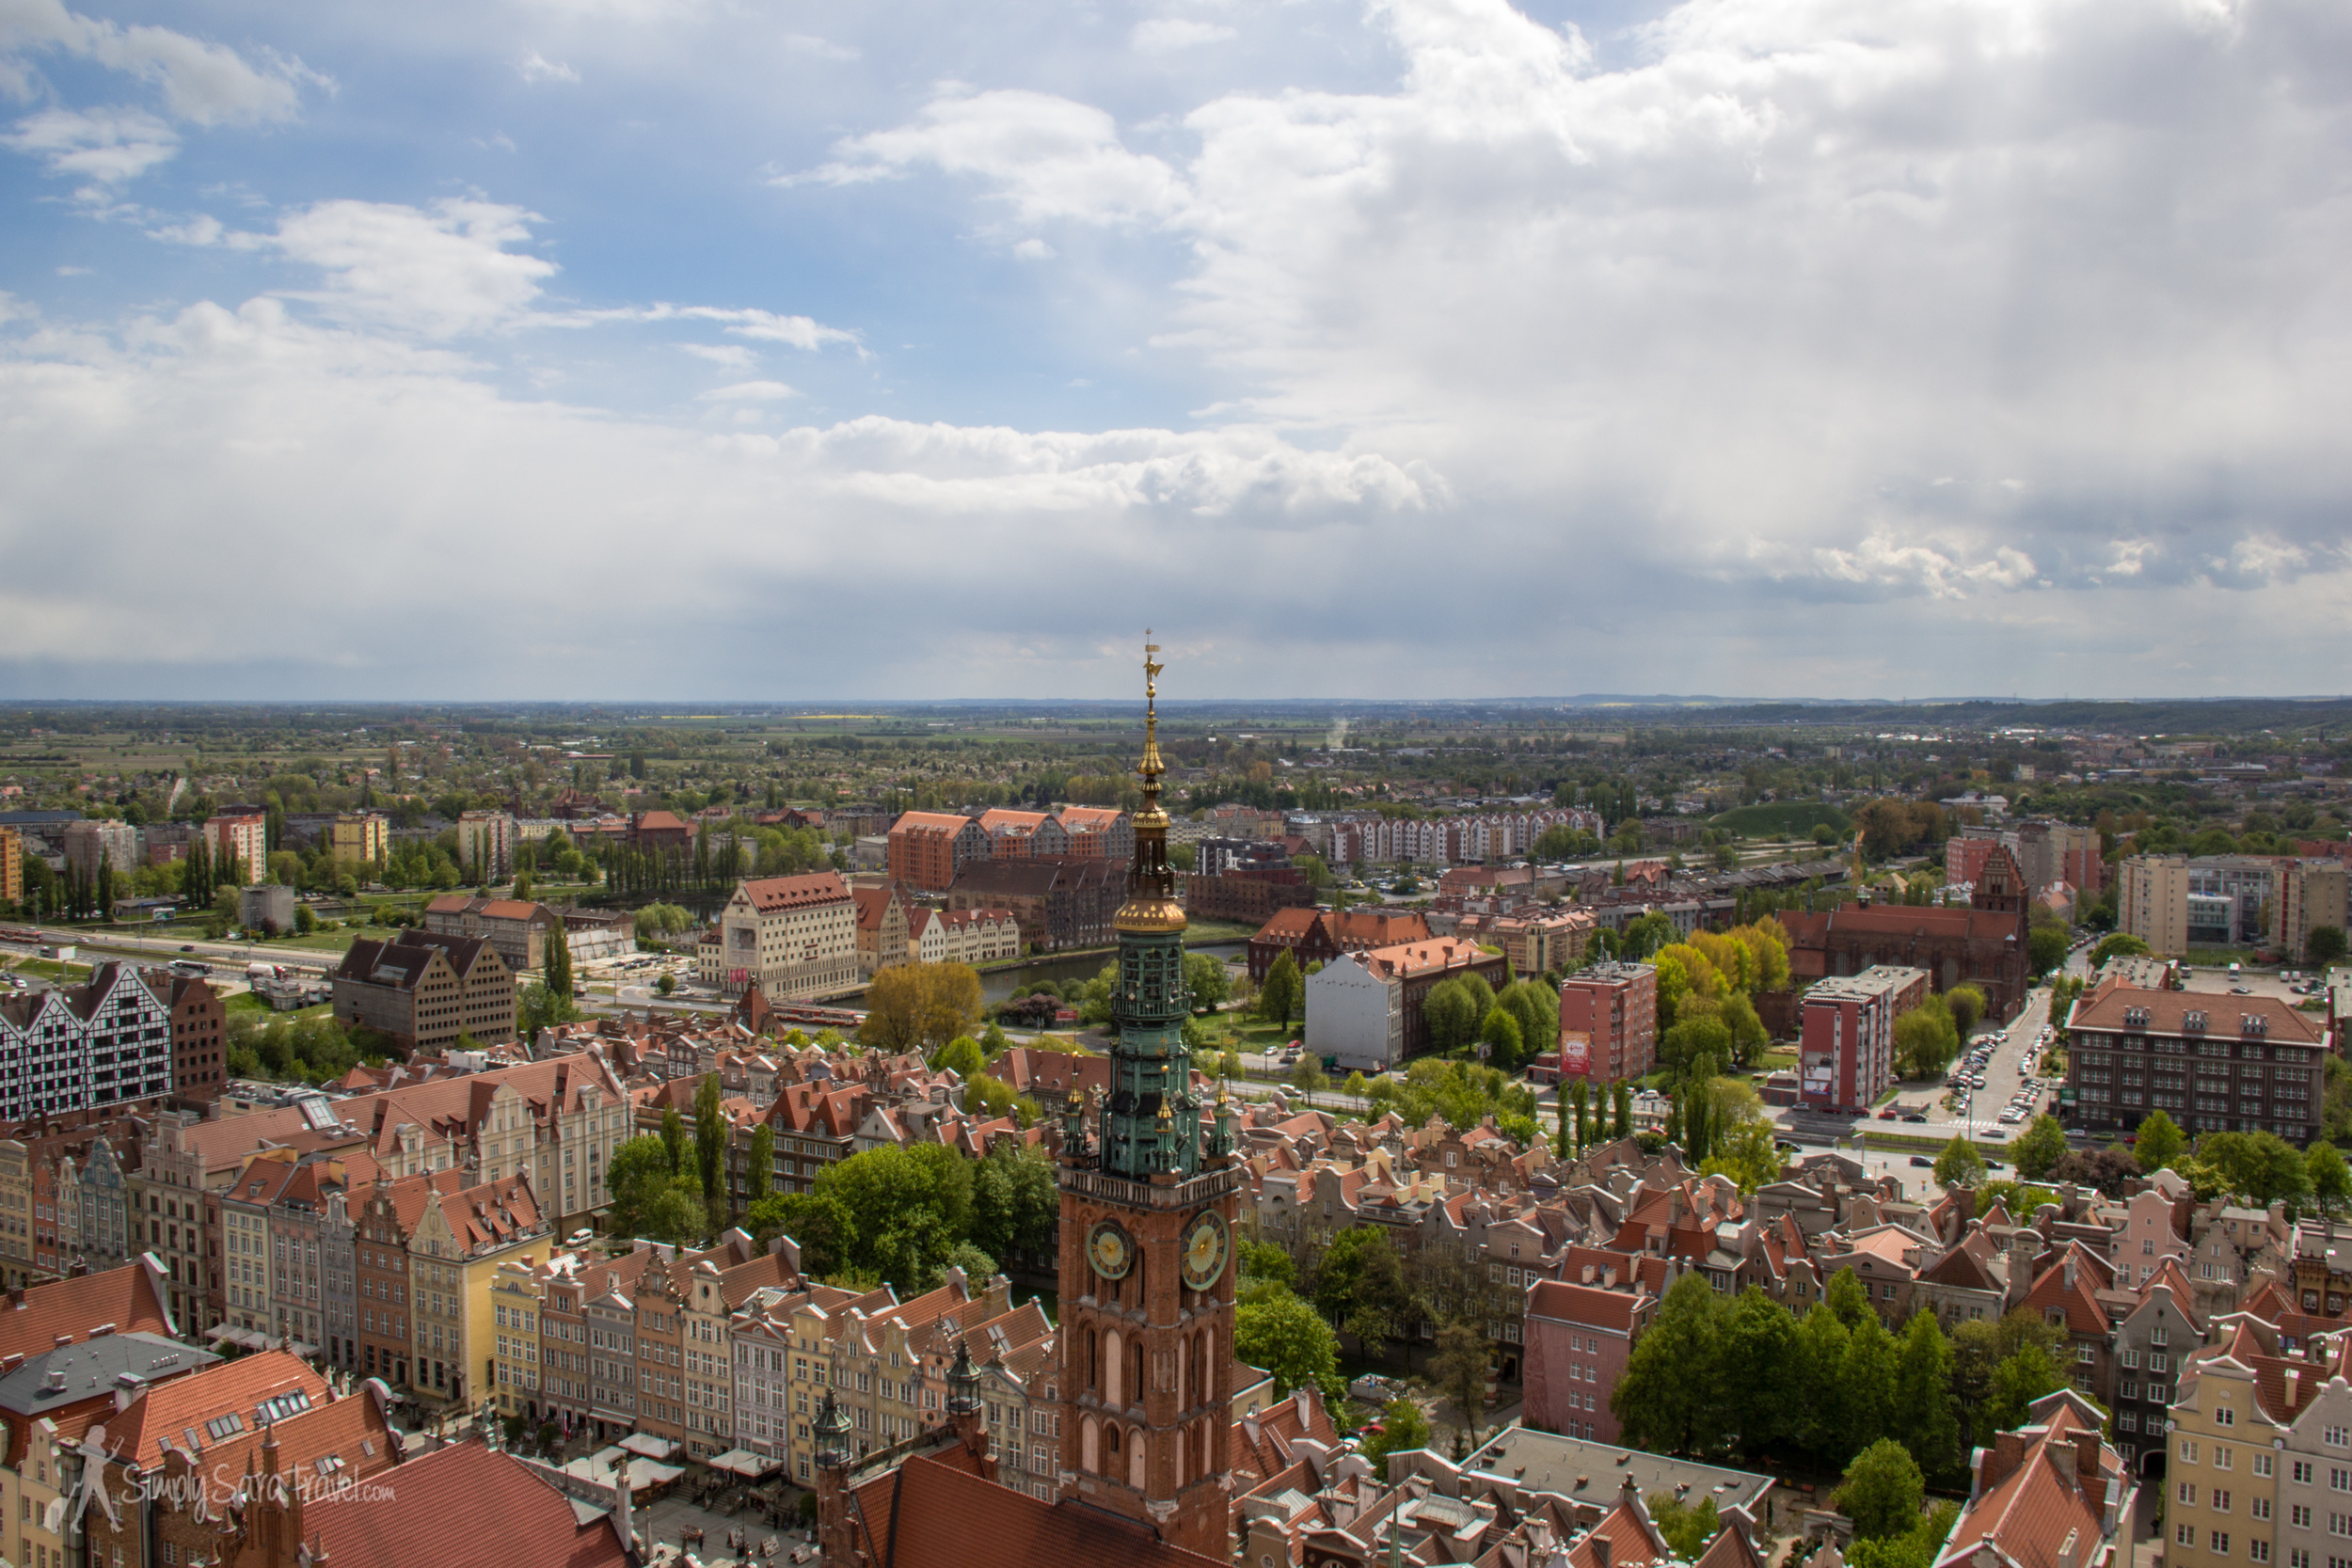 View ofGdańsk from the tower of St. Mary's Church